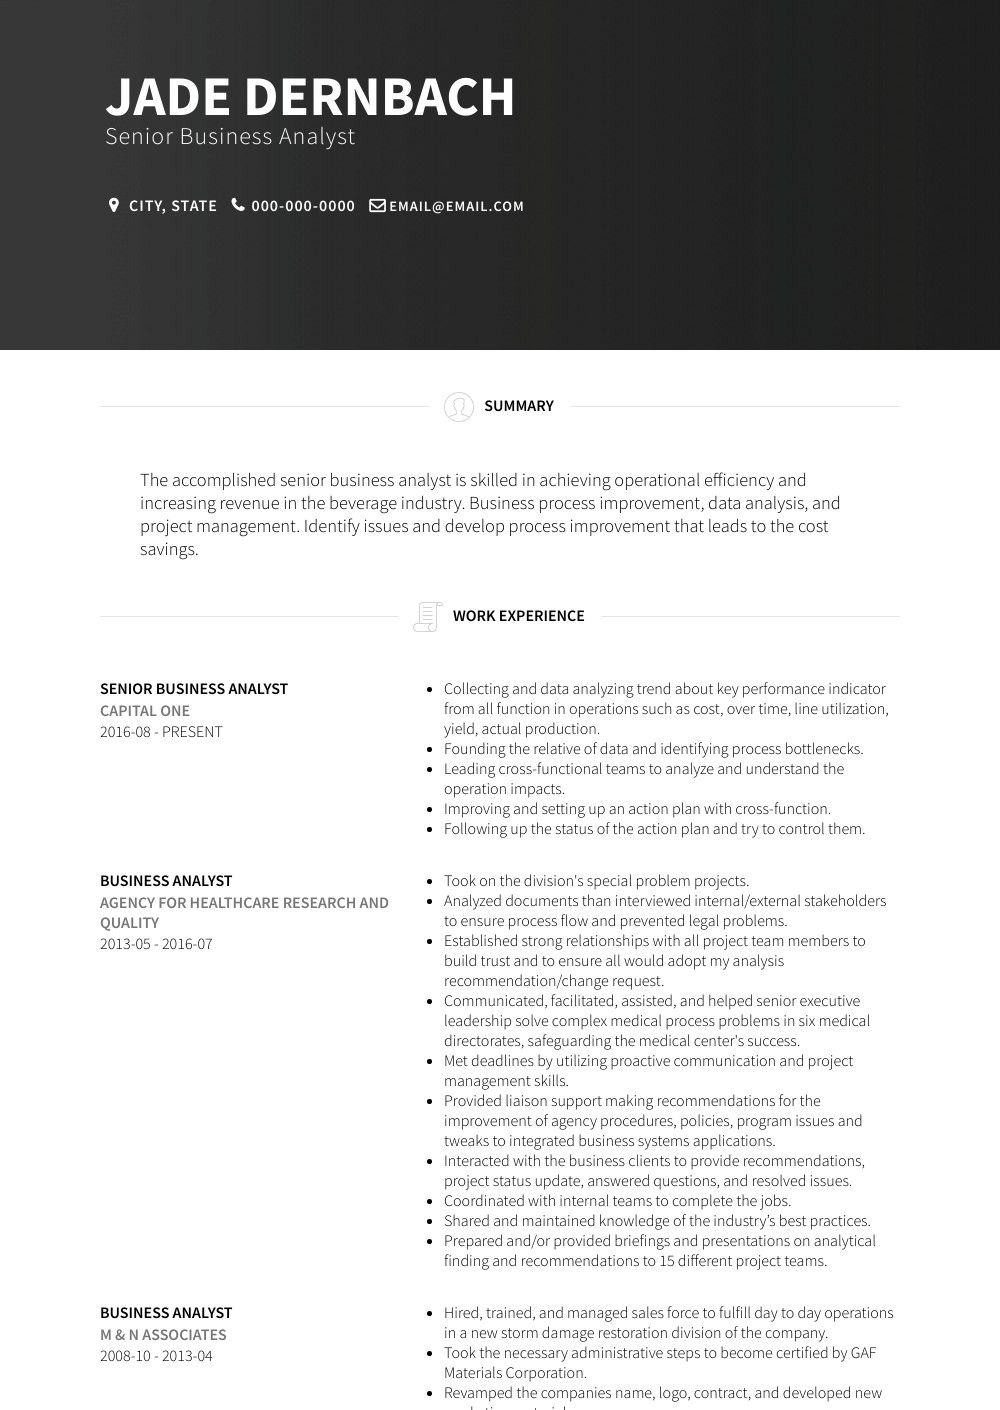 Business analyst resume examples cool and elegant senior